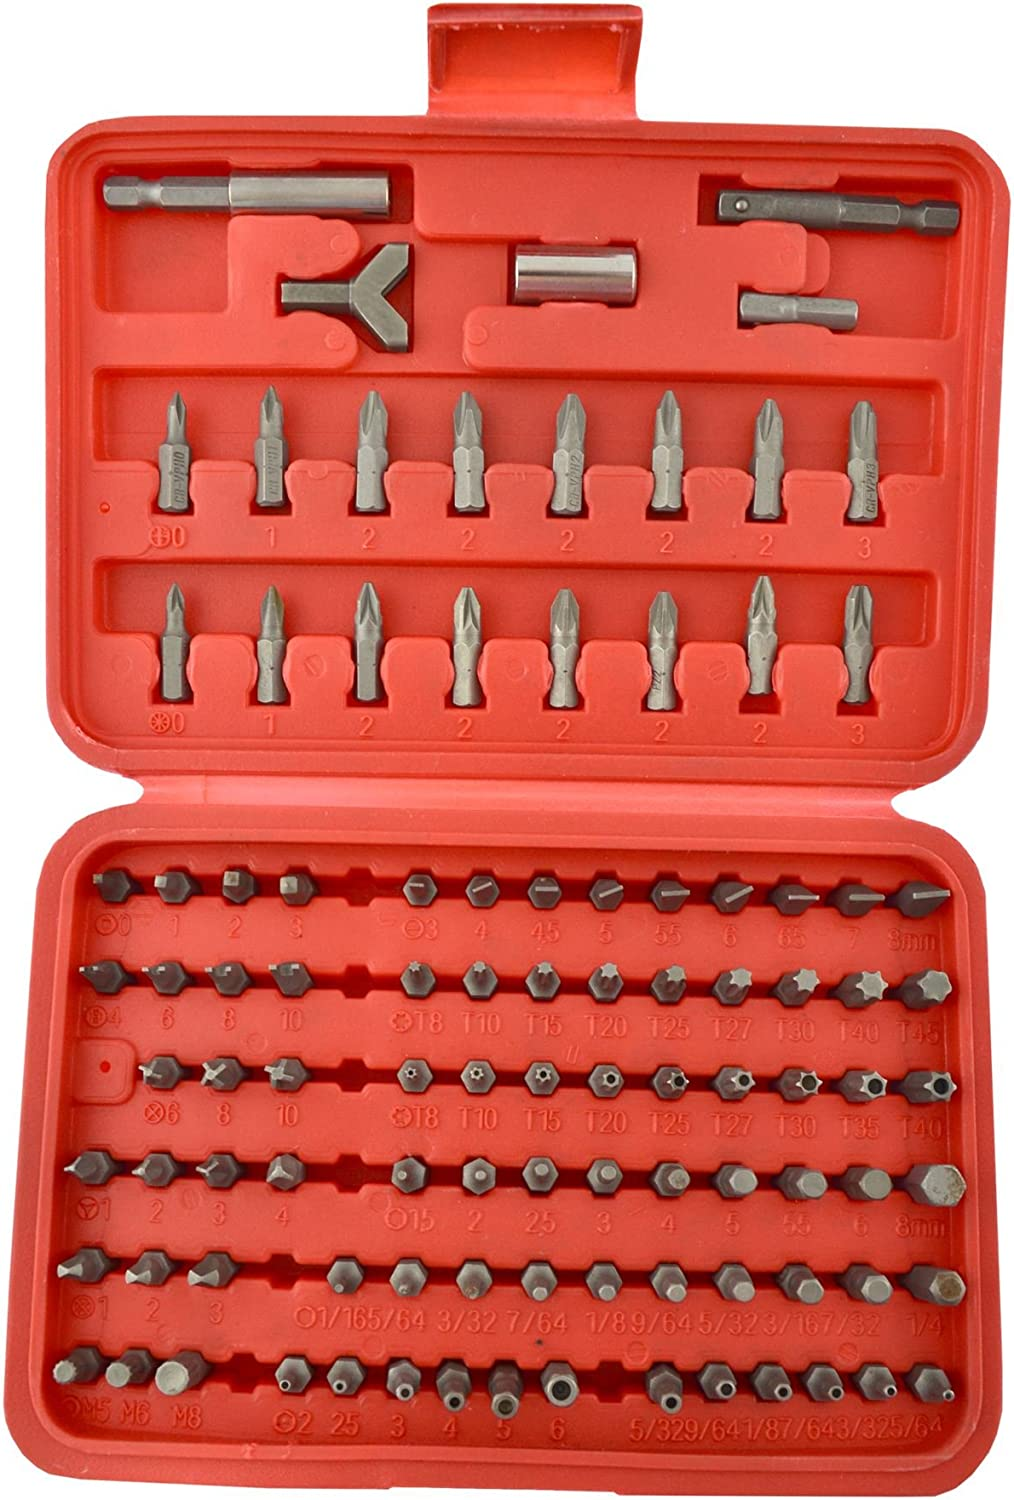 100pc Screwdriver Drill Wrench Torx Security Bit Tamperproof Hex TH244